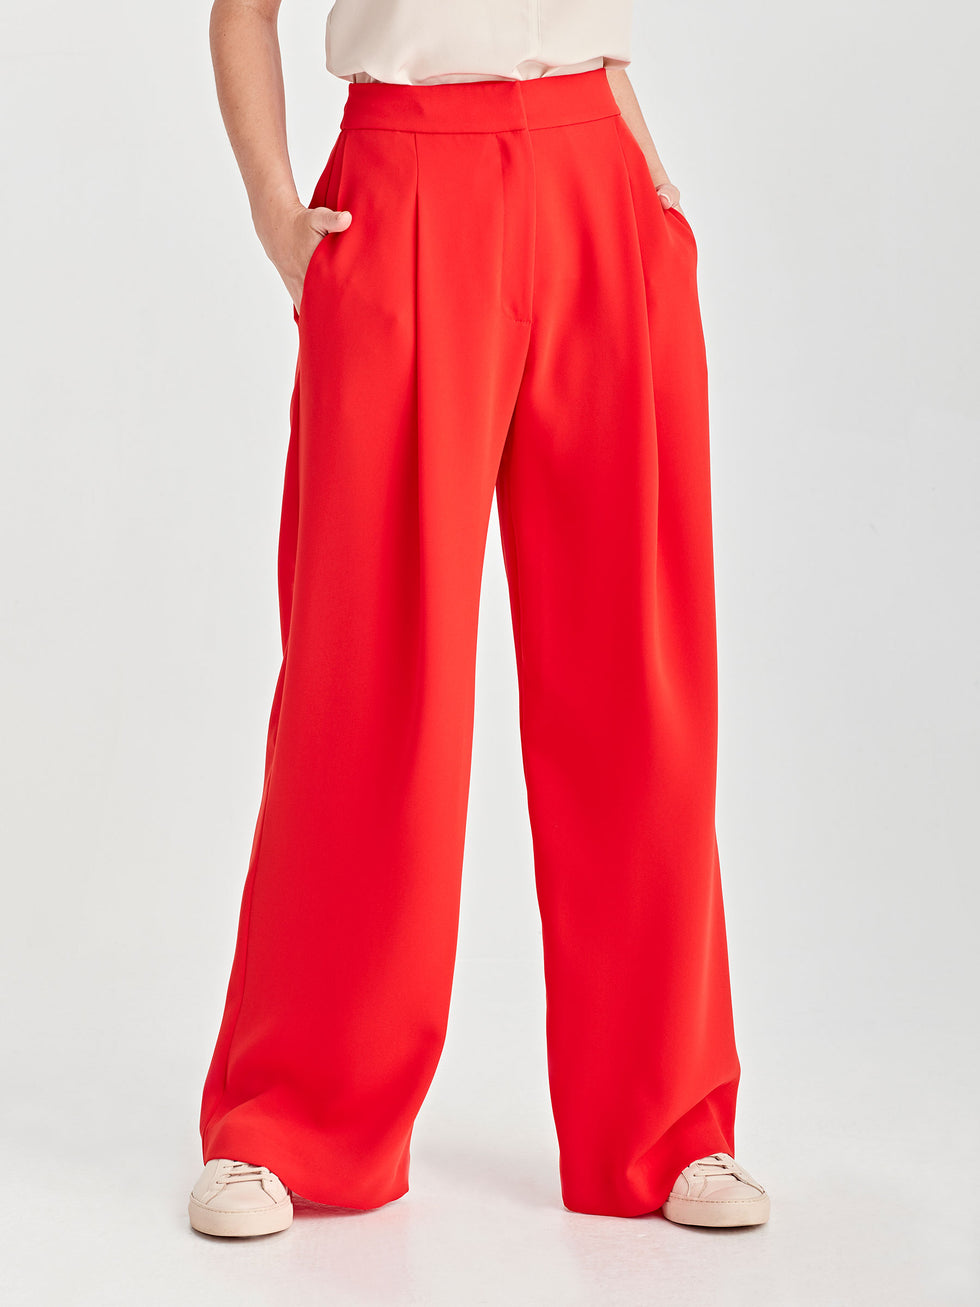 Calla Culottes (LuxeColoured Suiting) Cherry